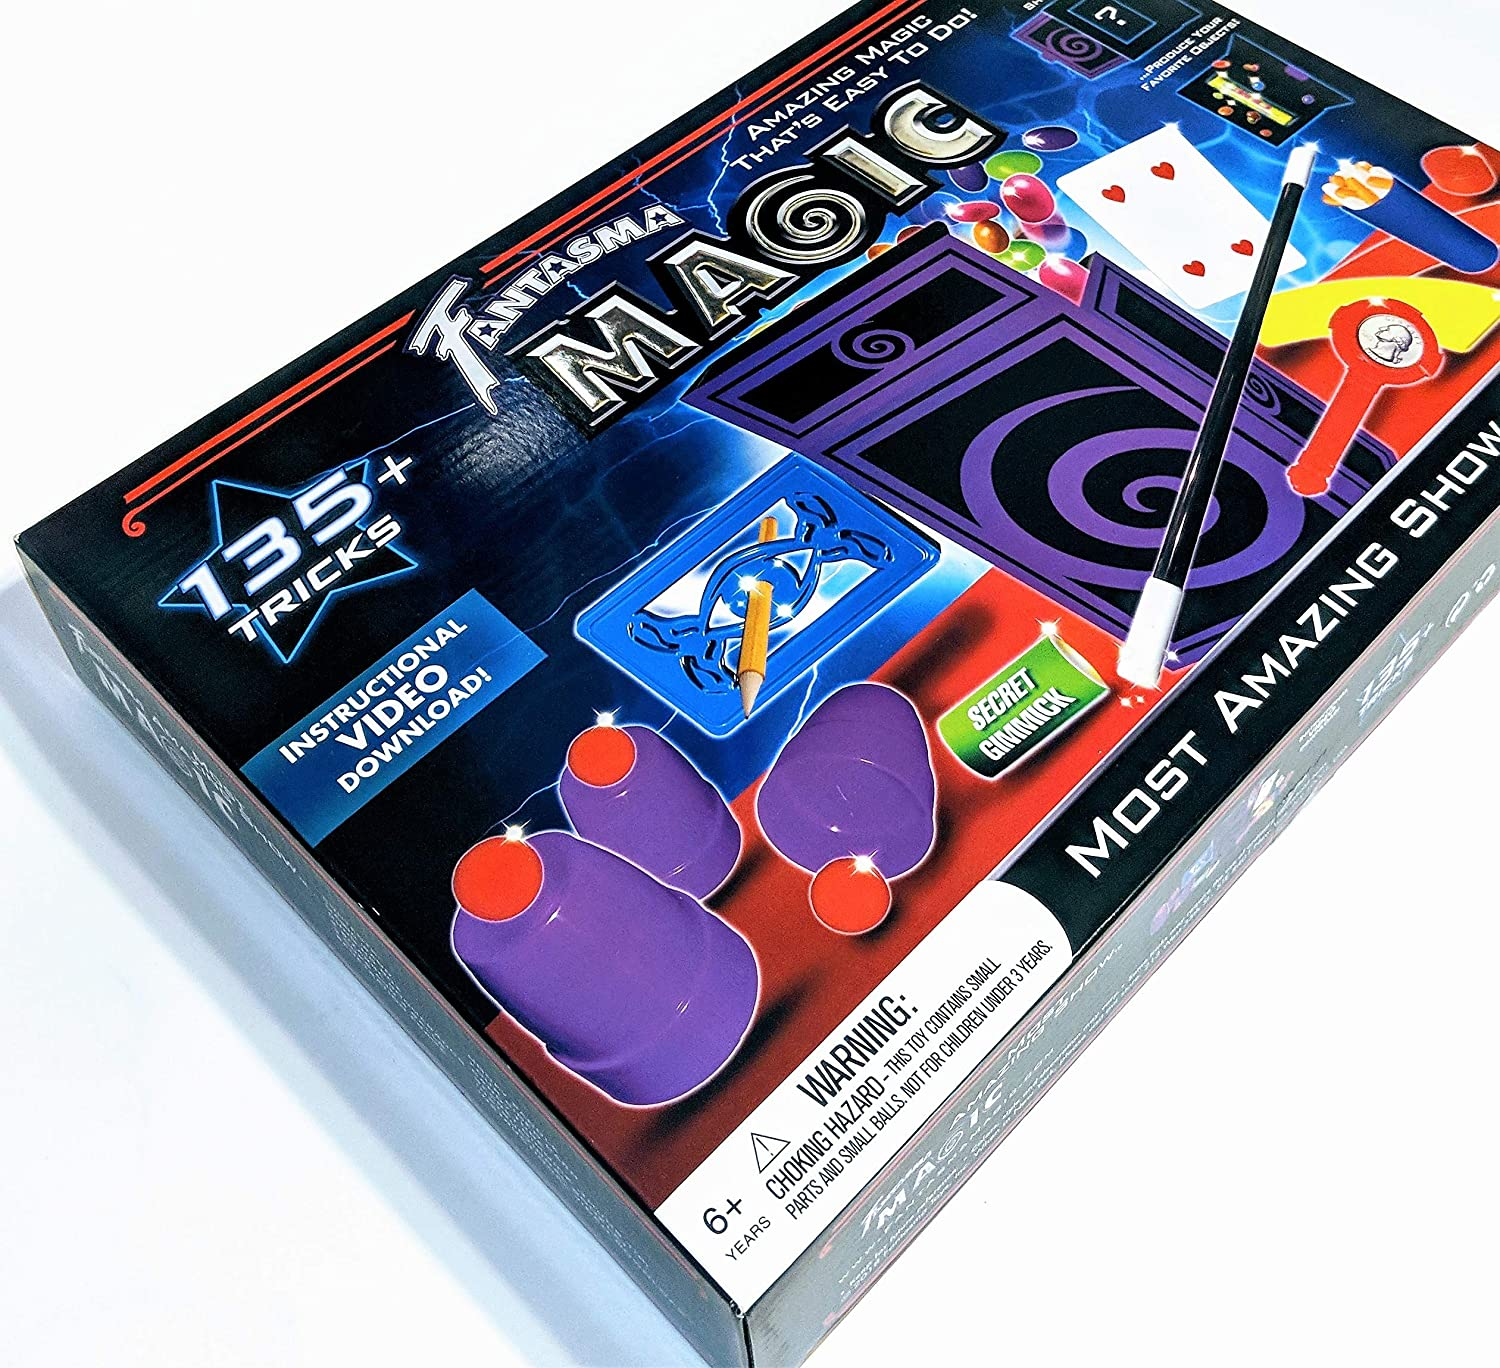 How to play gba and snes games with gateway 3ds and mt-card?